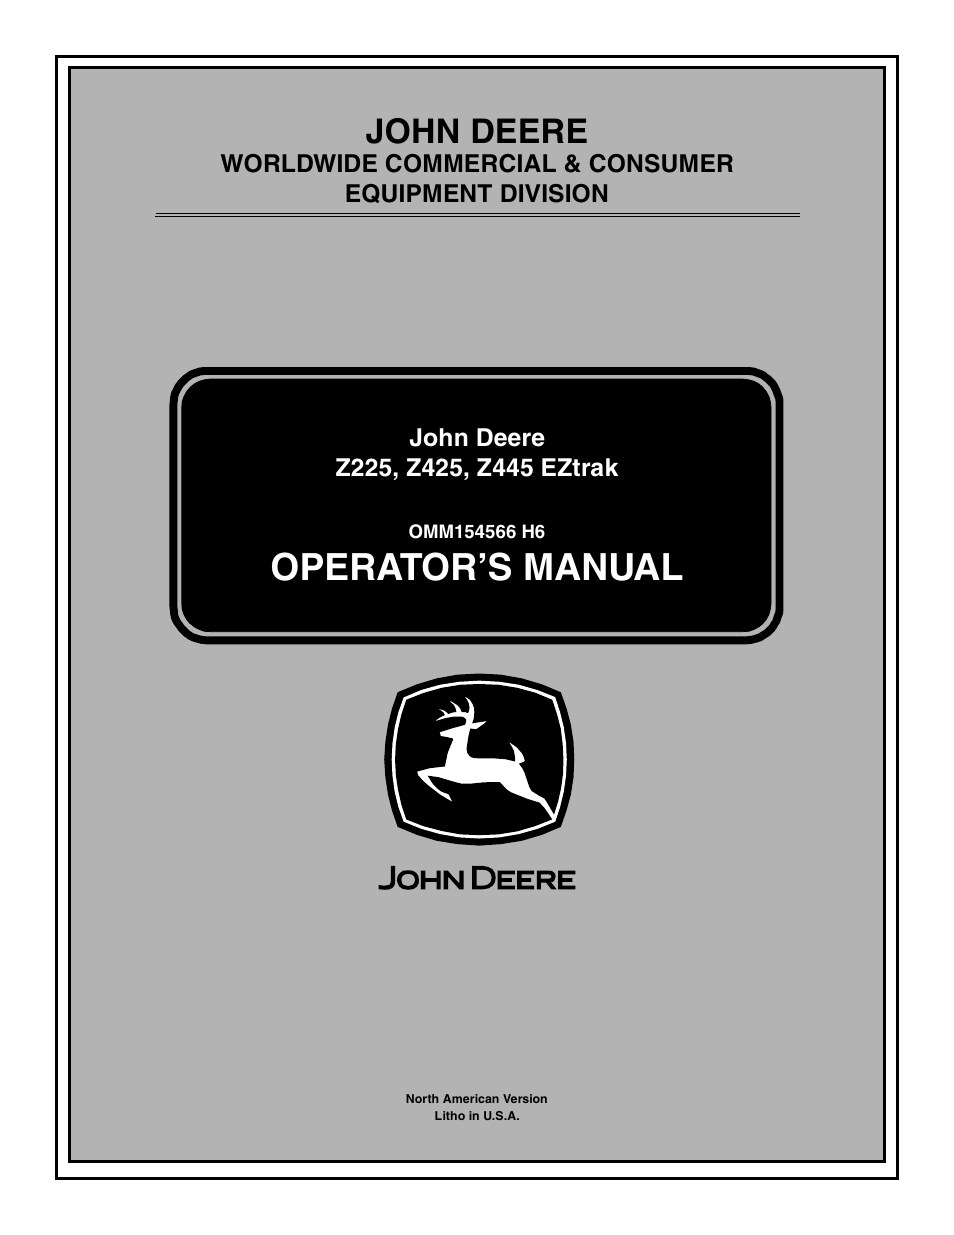 Fuse Box Cover Z425 Content Resource Of Wiring Diagram Kia Rio John Deere User Manual 48 Pages Also For Z225 Z445 Eztrak Rh Manualsdir Com 2002 Camaro